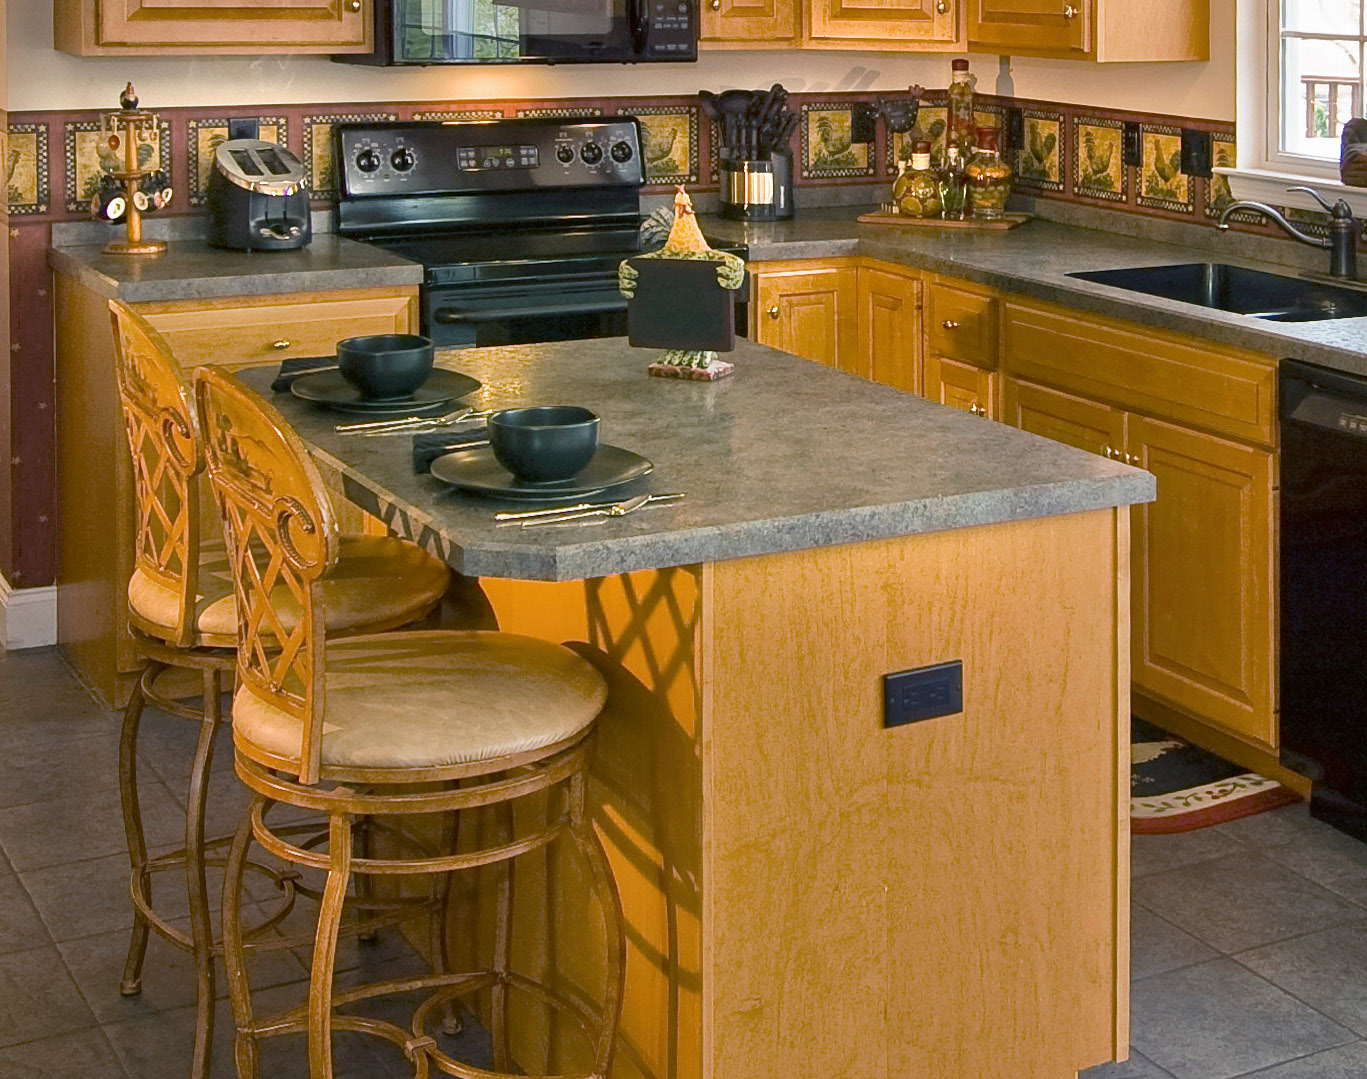 Wilsonart Hd Intergrated Sinks Brochure Wilsonart Countertop Designer Kitchens Simply Closets Blinds Designs